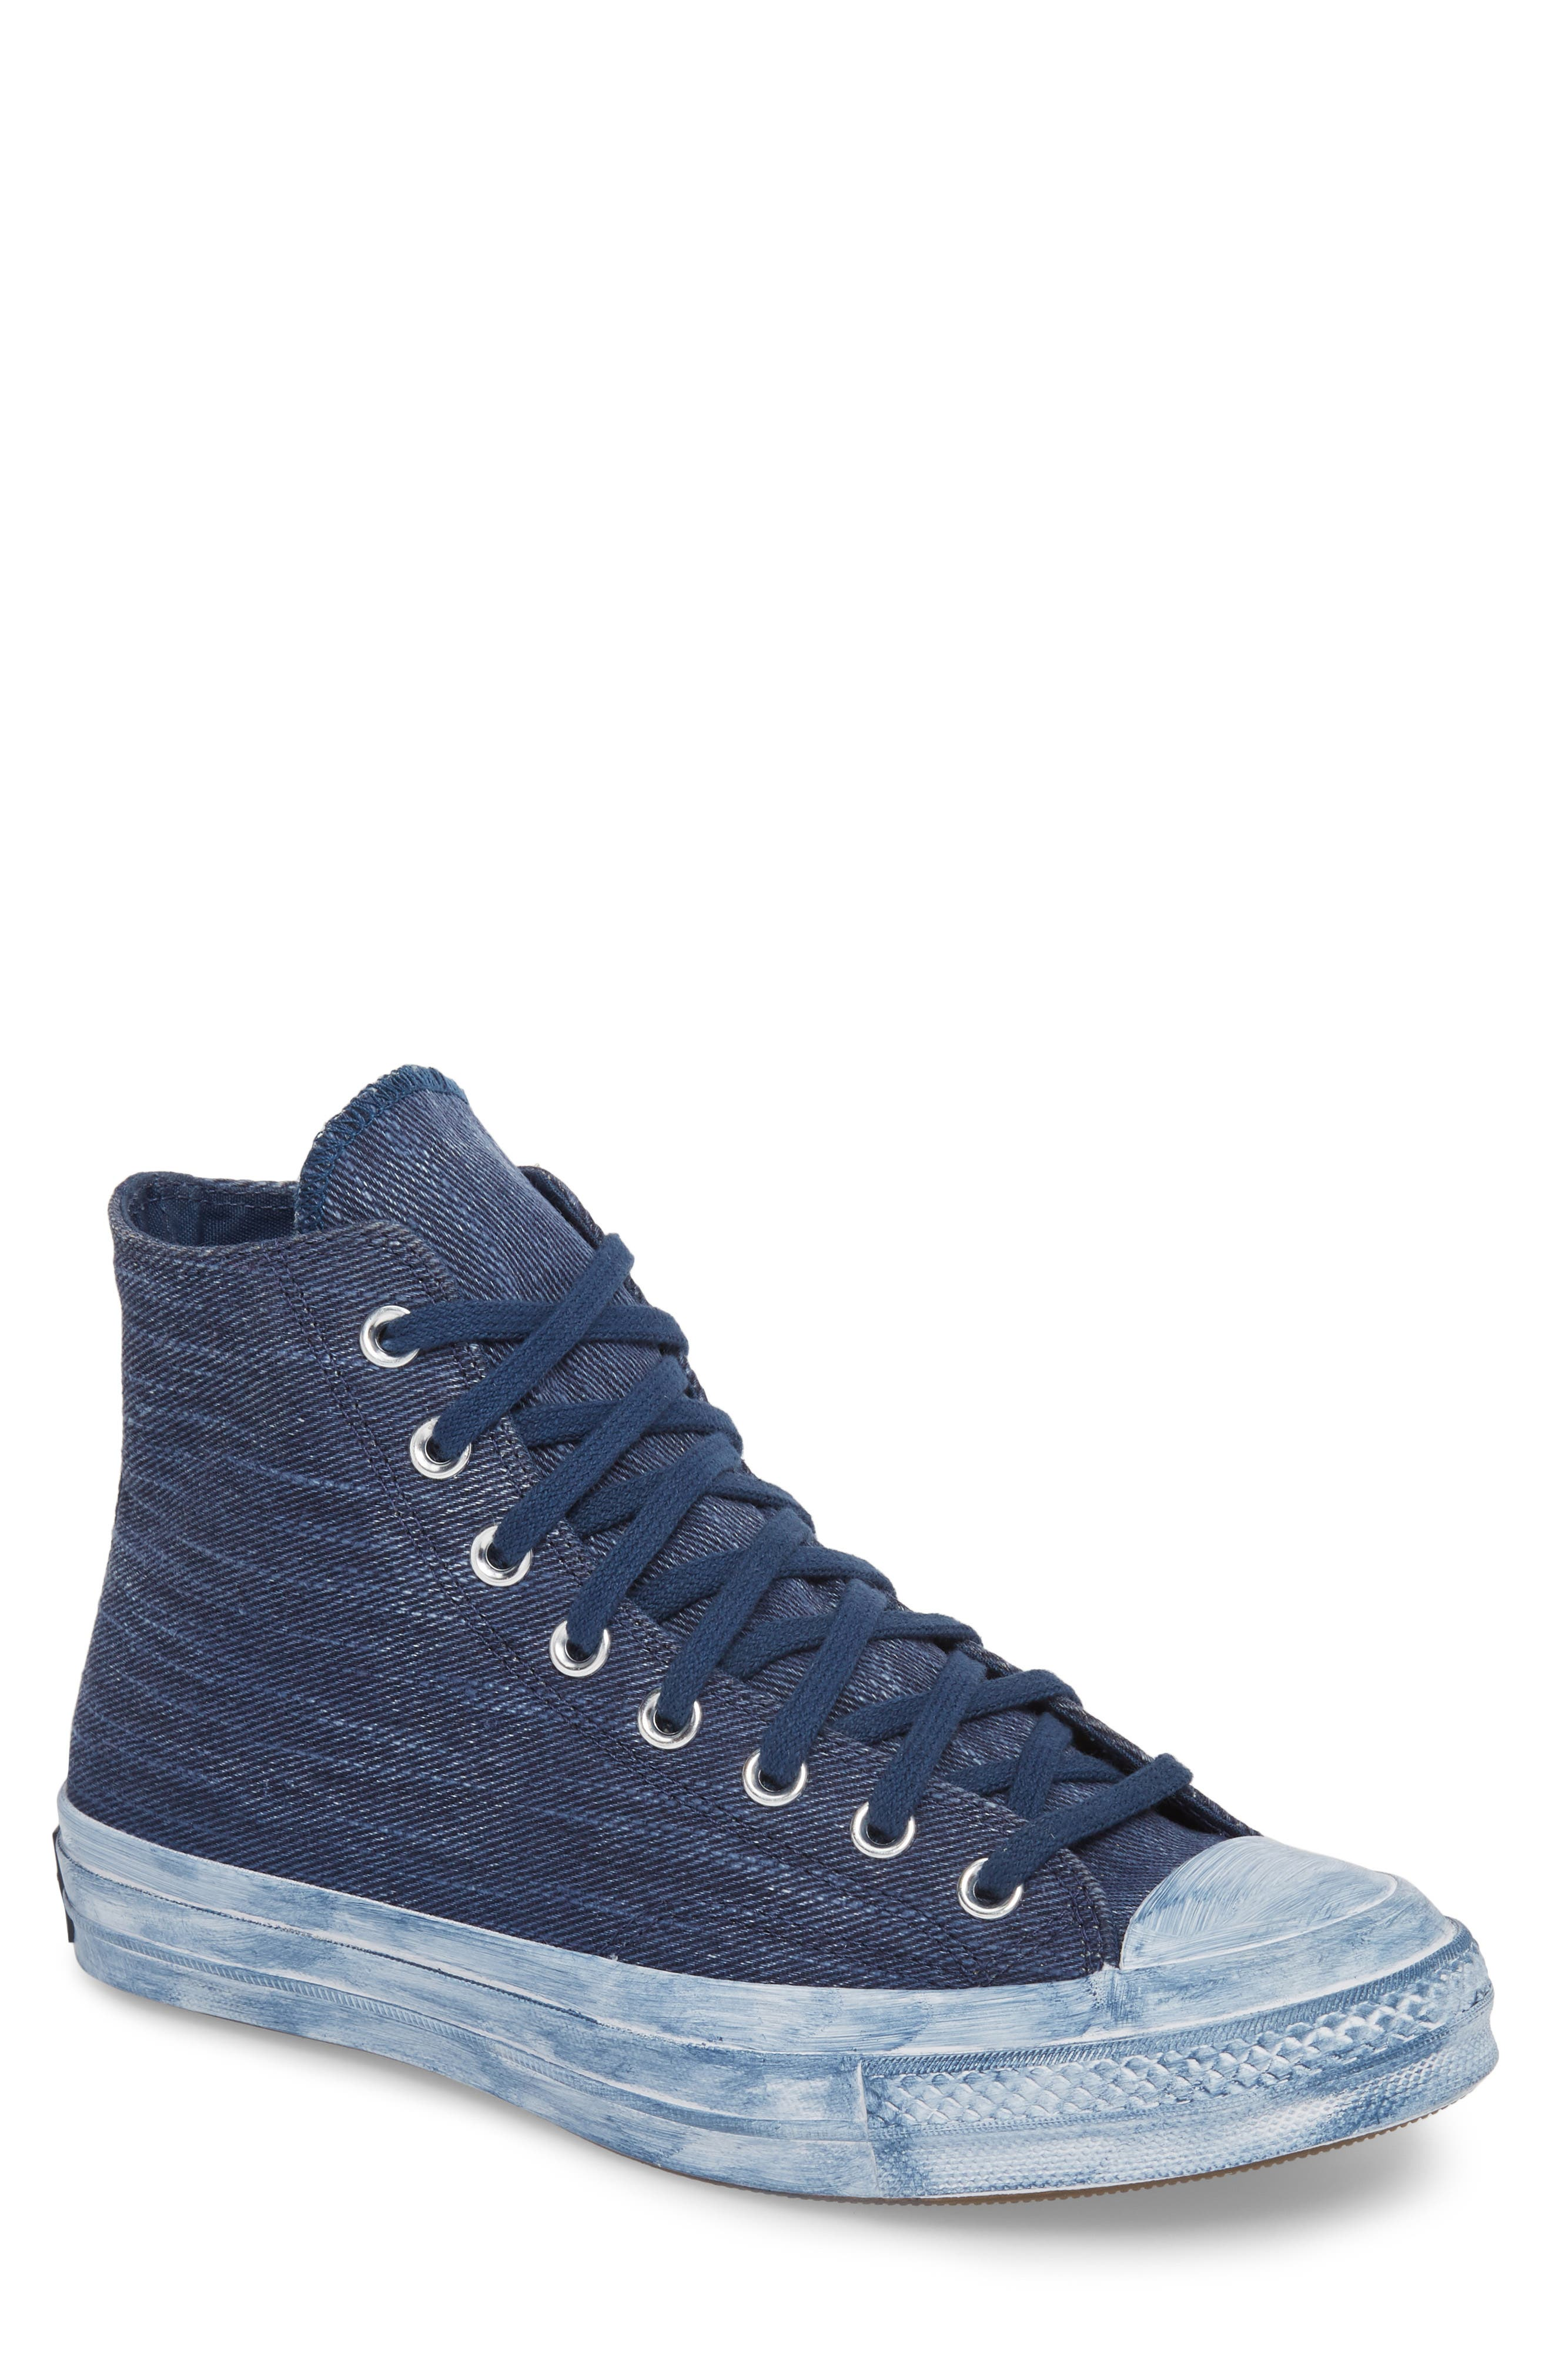 Chuck Taylor<sup>®</sup> All Star<sup>®</sup> Overdyed Linen High Top Sneaker,                             Main thumbnail 1, color,                             Navy